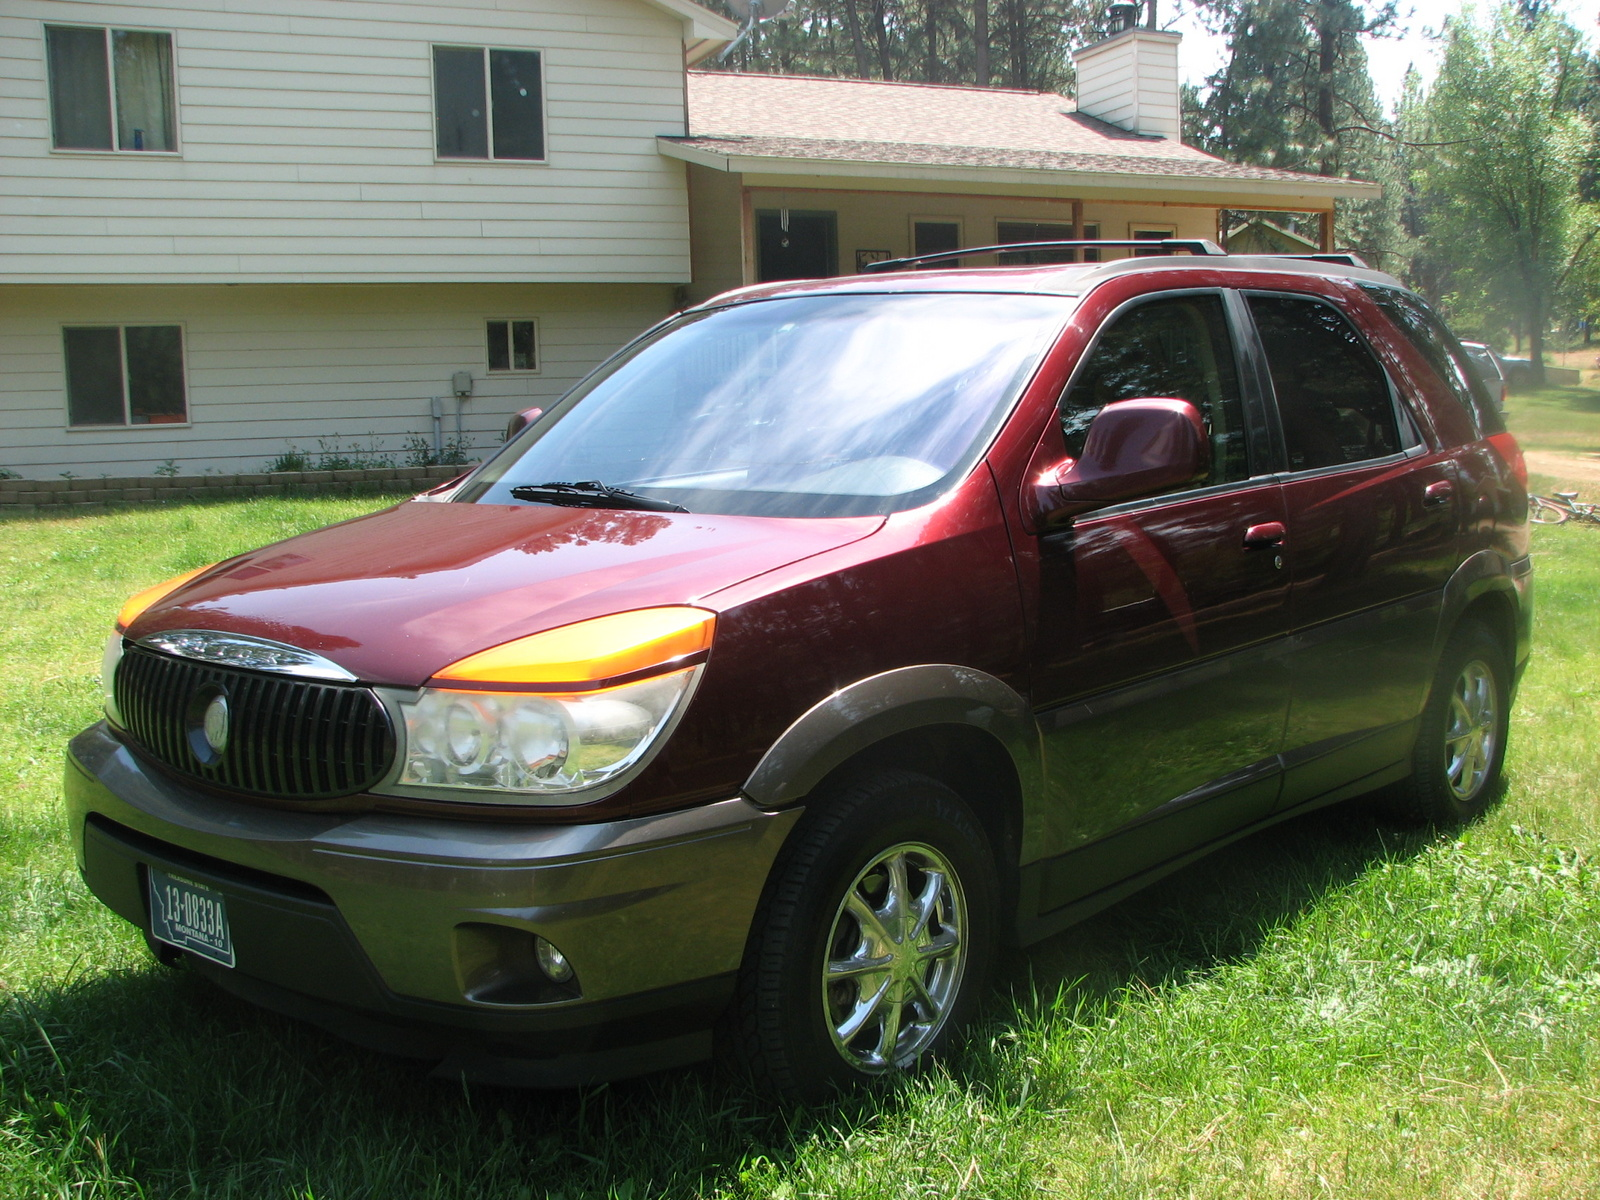 2002 buick rendezvous exterior pictures cargurus. Cars Review. Best American Auto & Cars Review